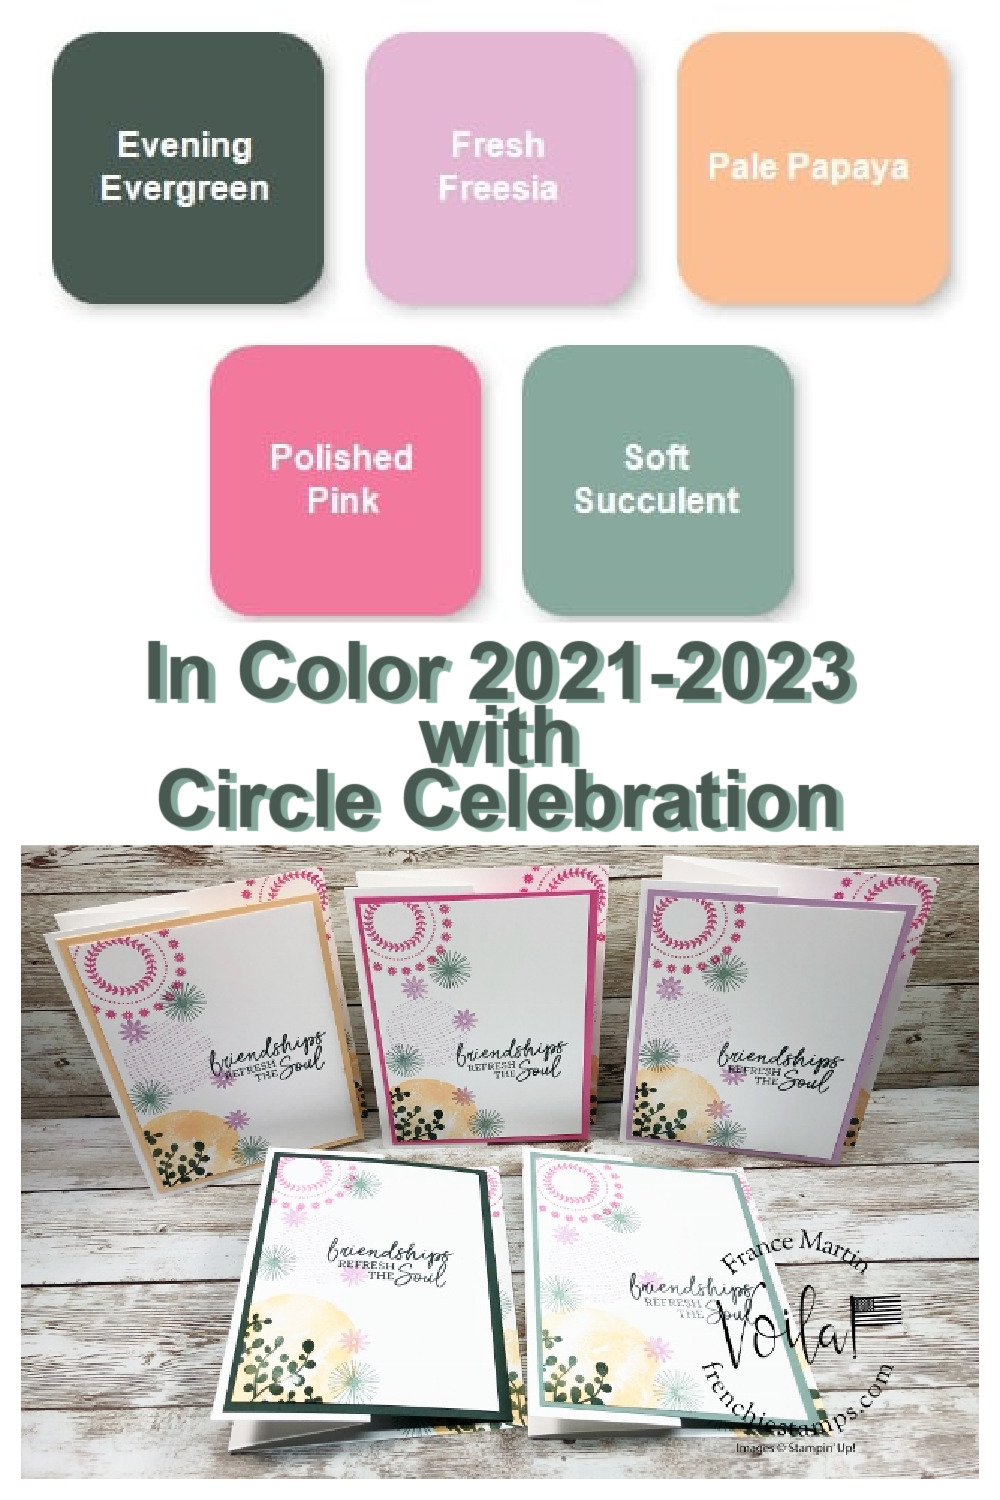 In-Colors 2021-2023 with circle Celebration